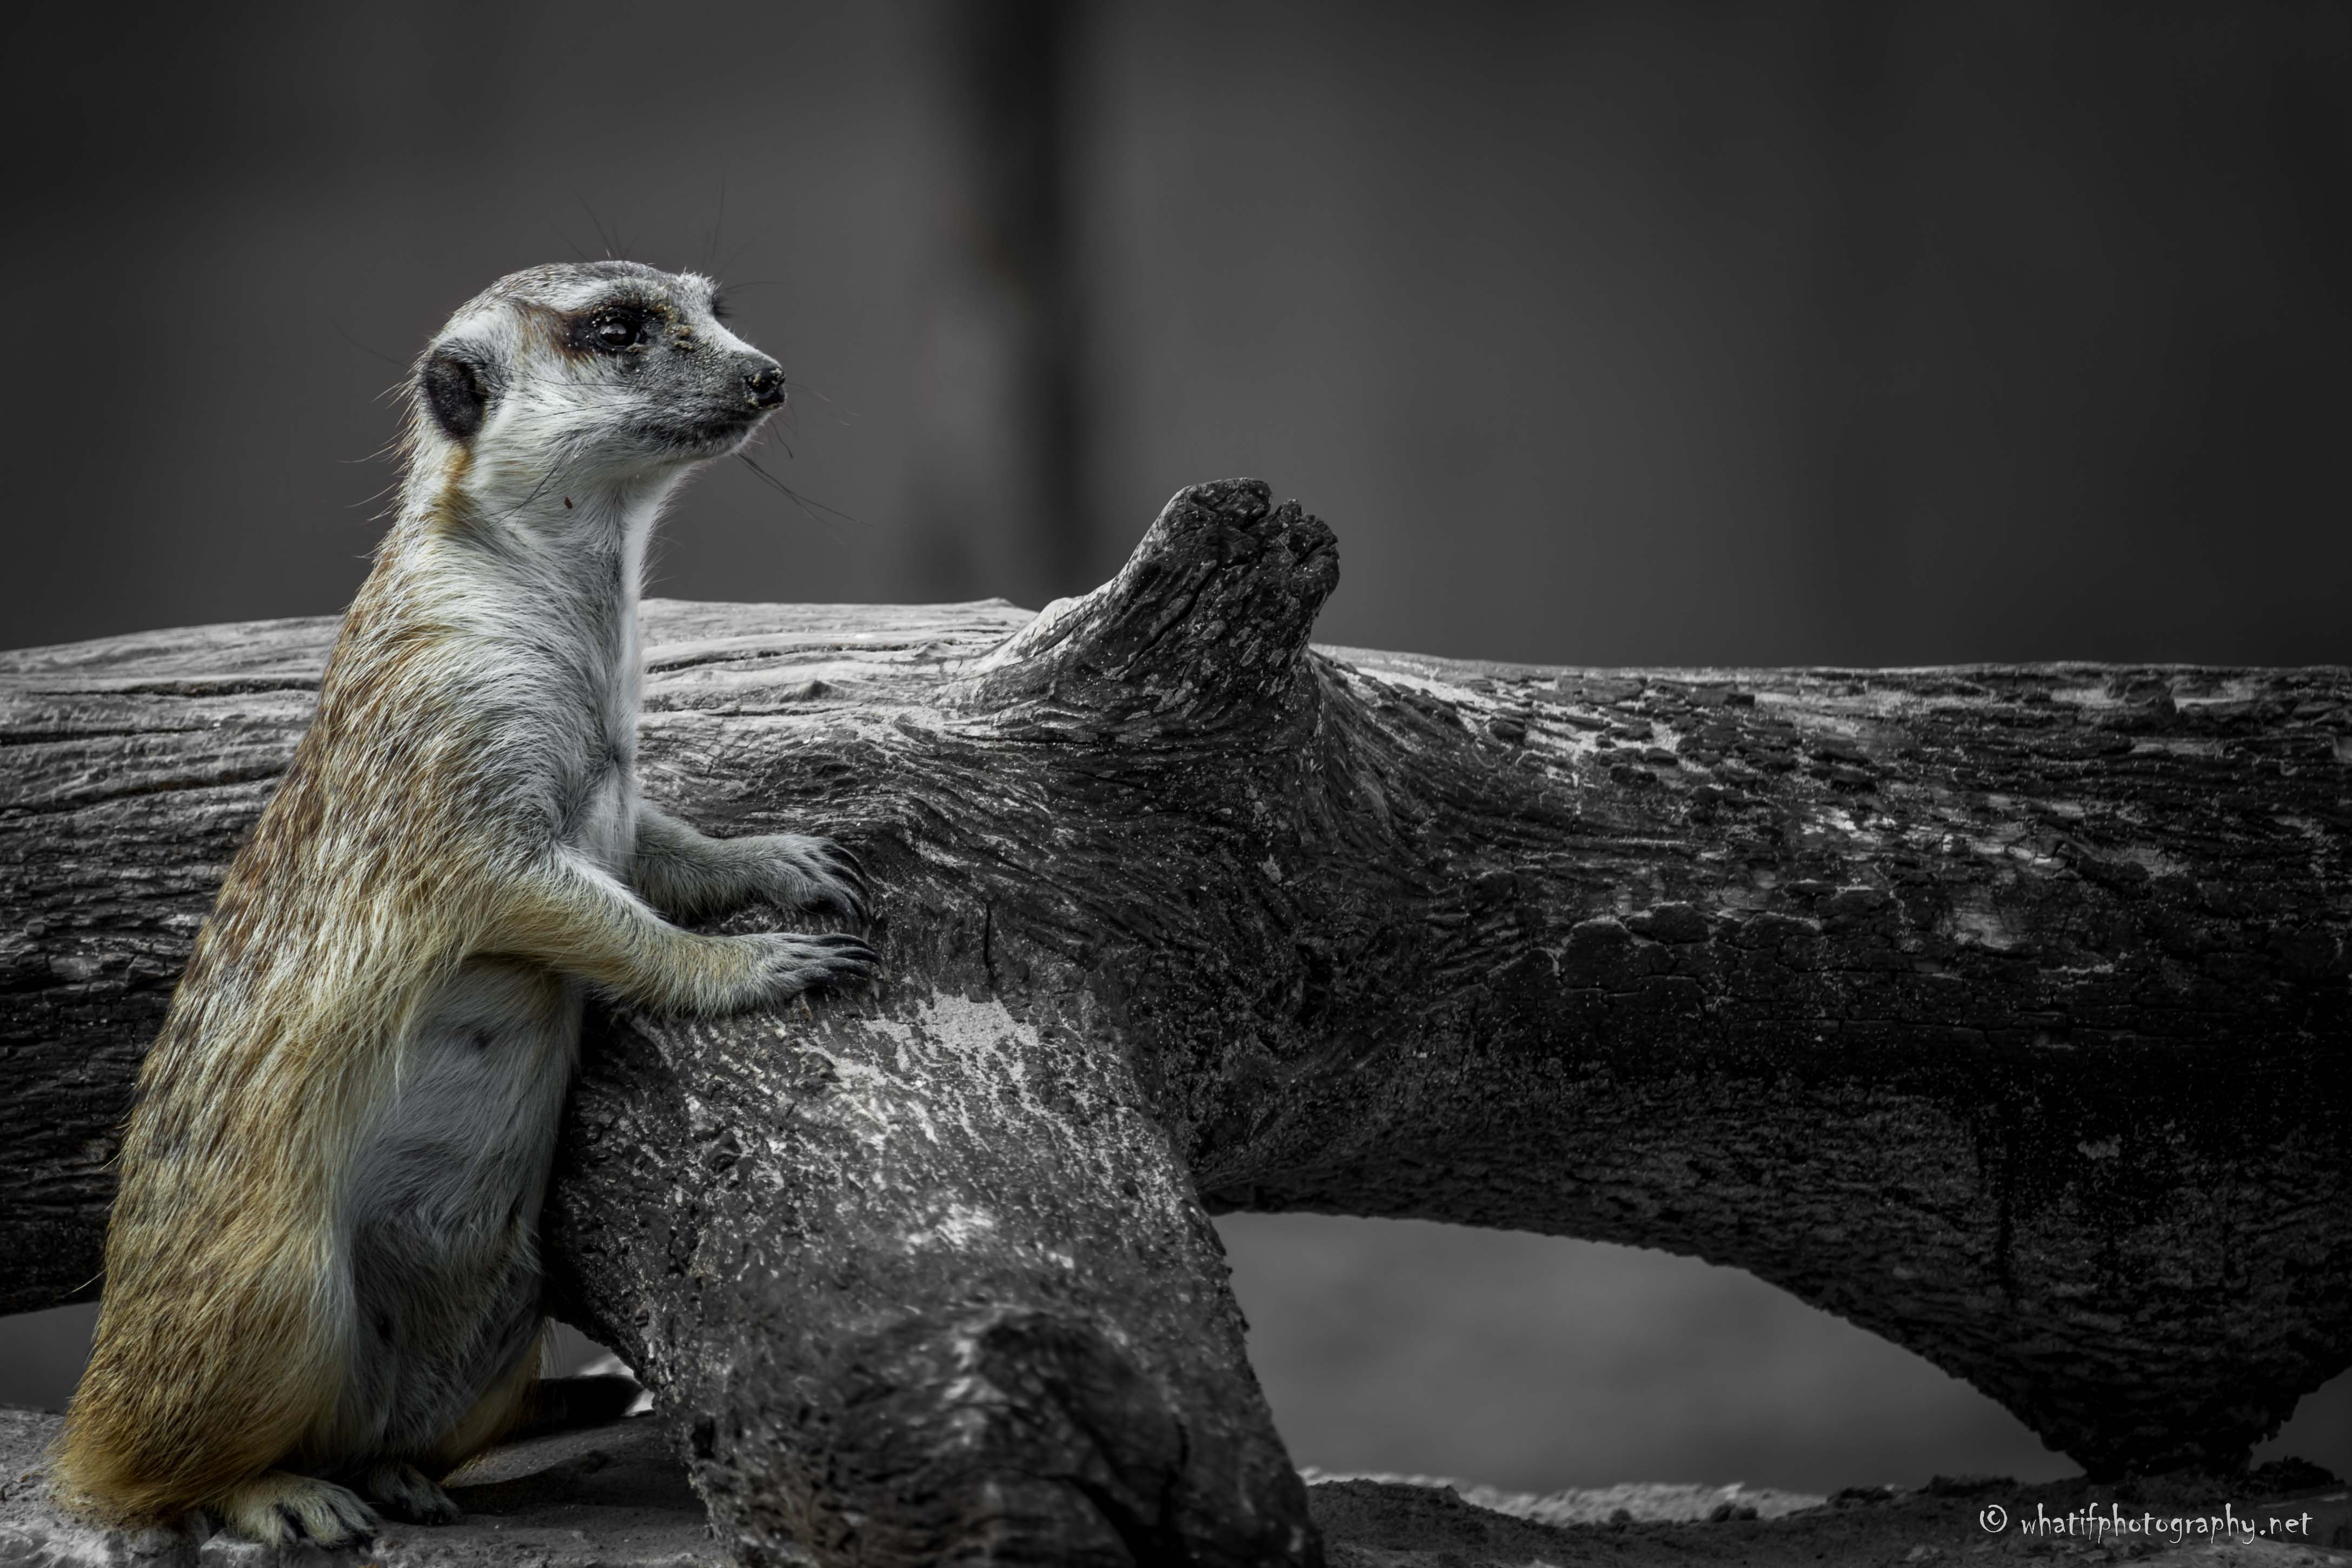 Meerkat on the watch